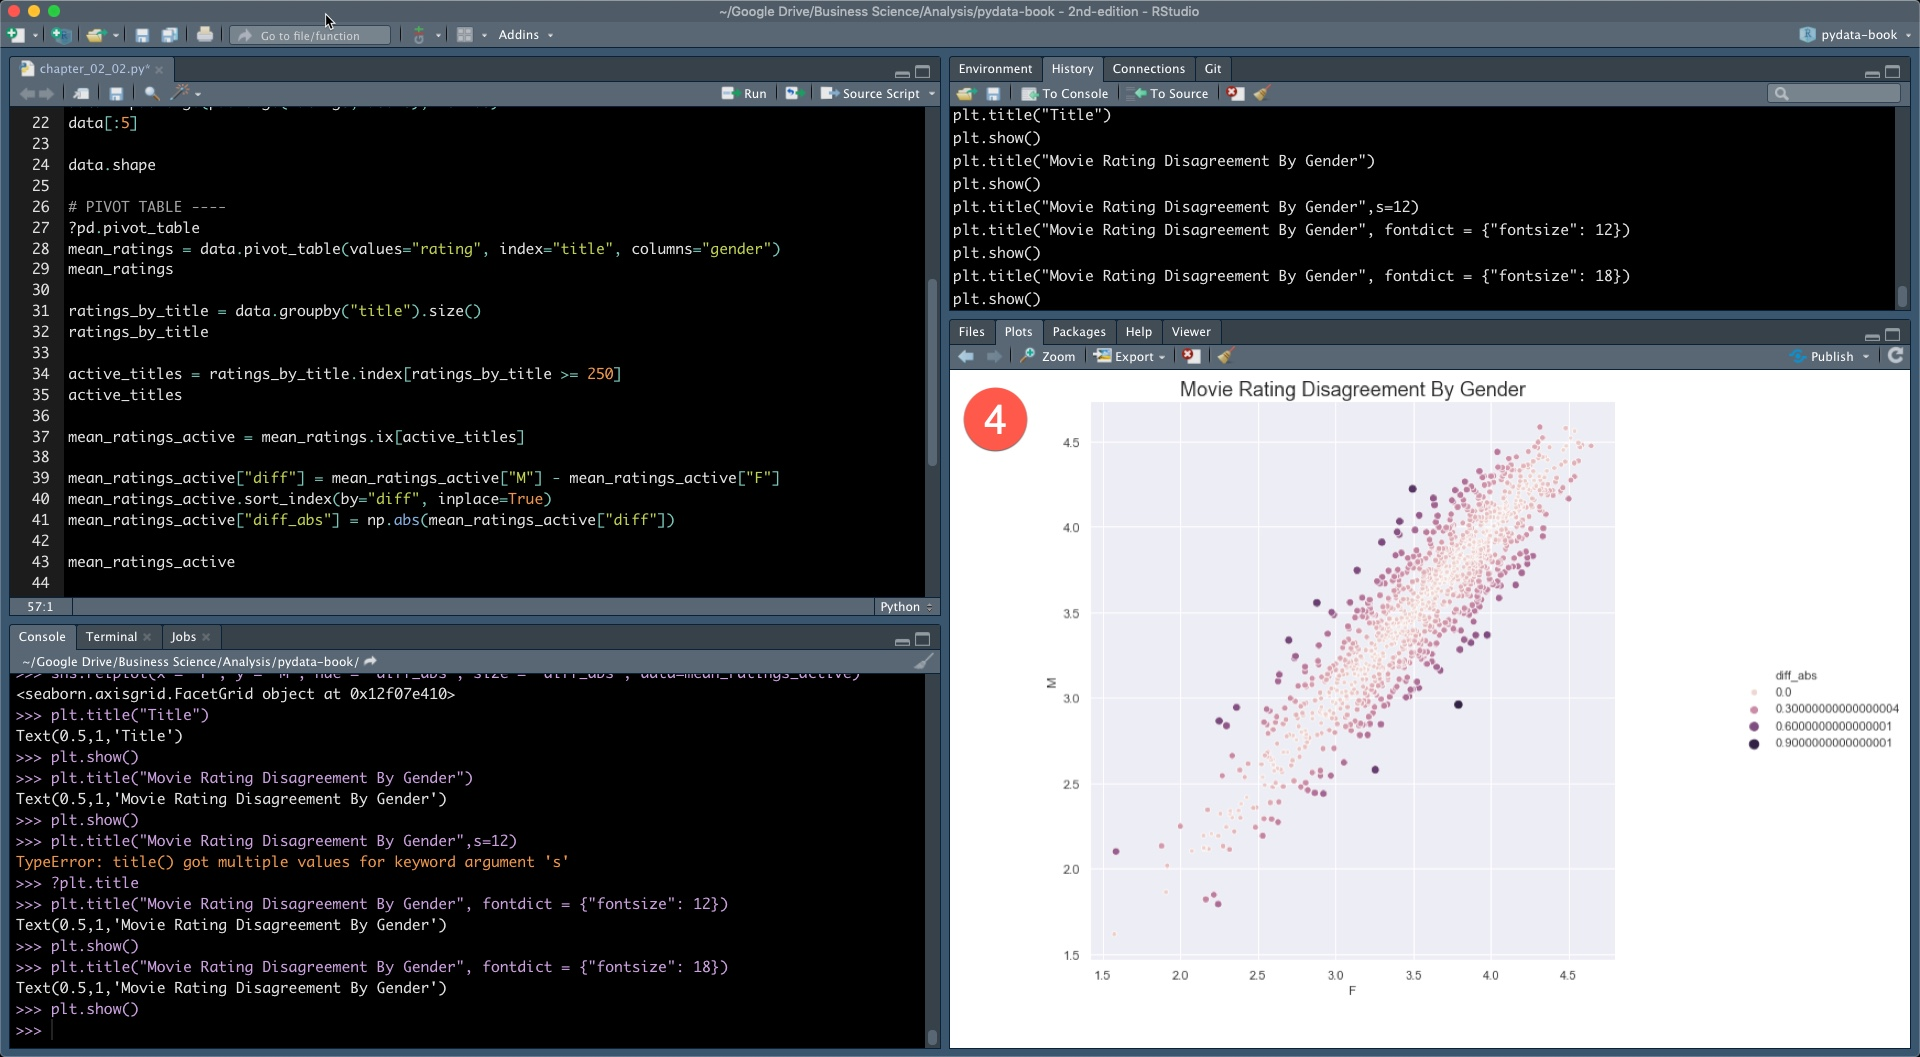 Python Integration in RStudio - Data Science IDE Review